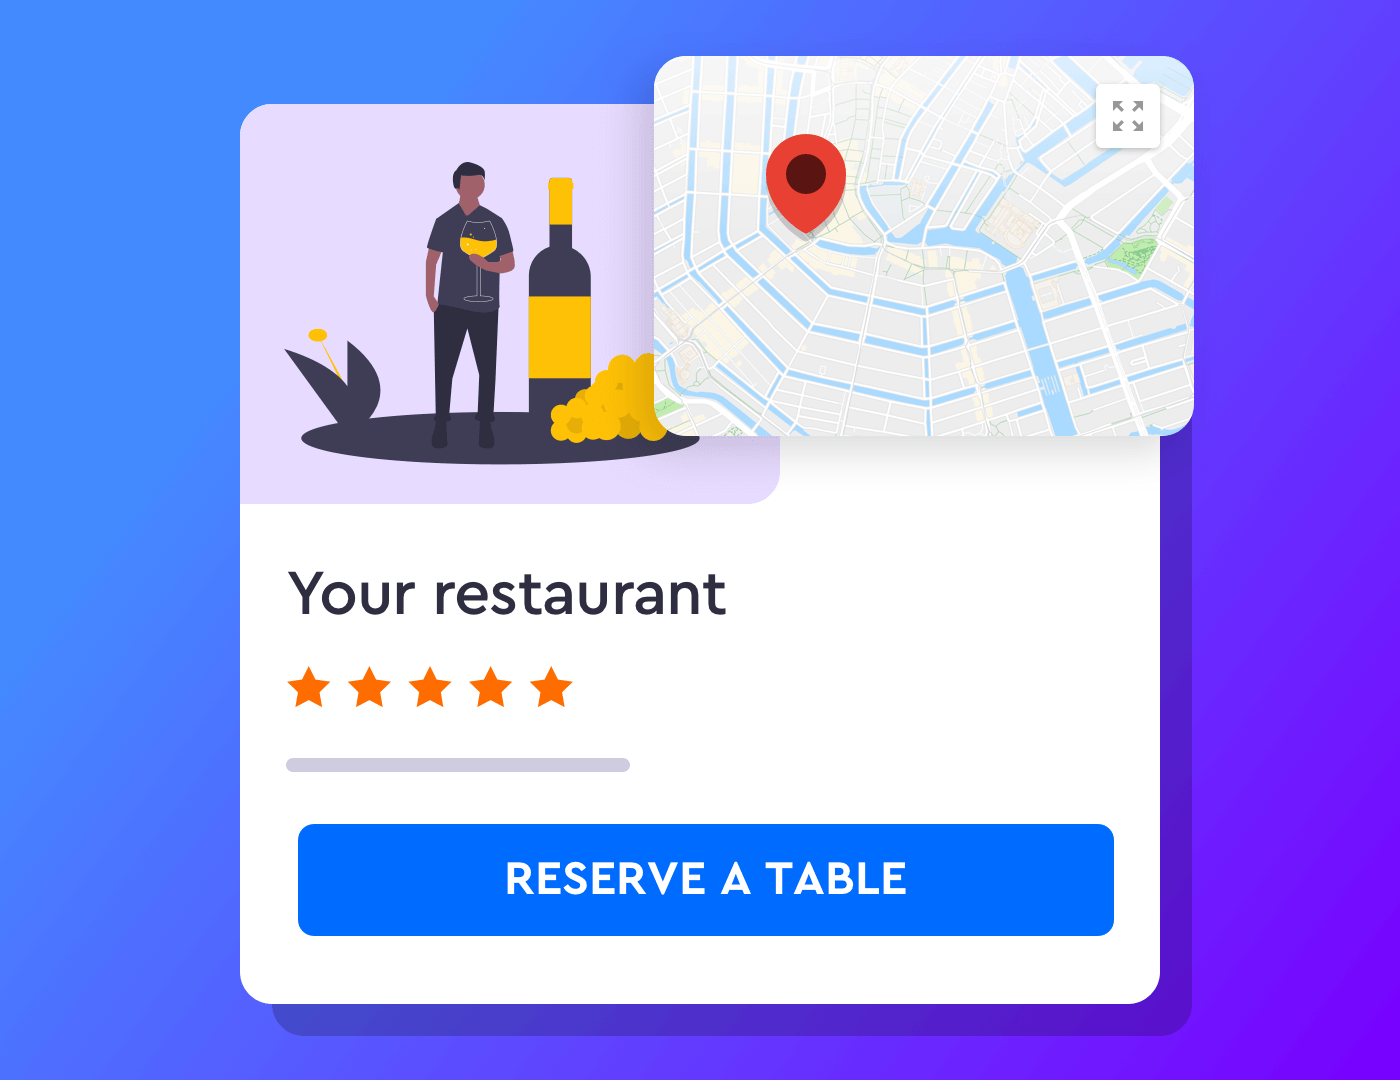 Why restaurants should accept reservation from Google